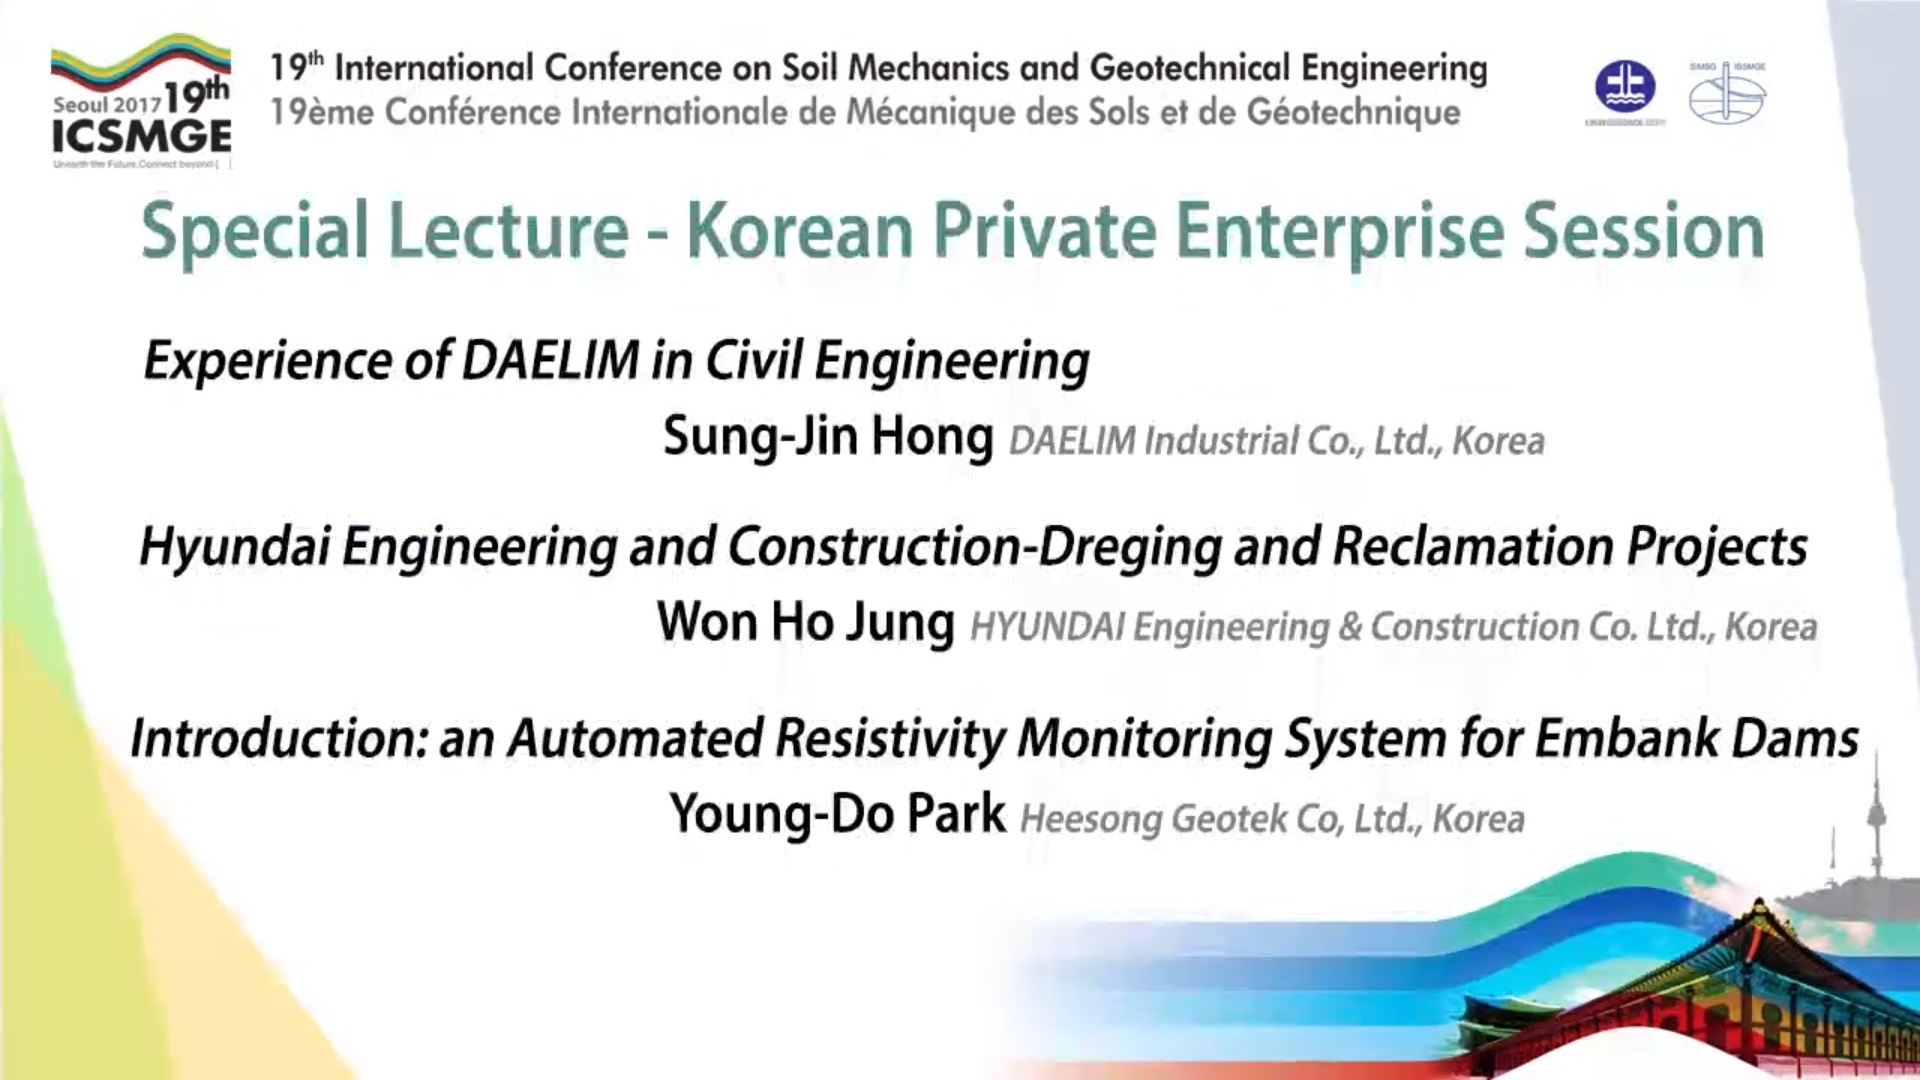 "Korean Private Enterprise Session (Special Lecture - 19th ICSMGE) {""category"":""honour_lecture"",""subjects"":[""Other""],""number"":""ICSMGE19113"",""instructors"":[""Sung-Jin Hong"", ""Won Ho Jung"", ""Young-Do Park""]}"